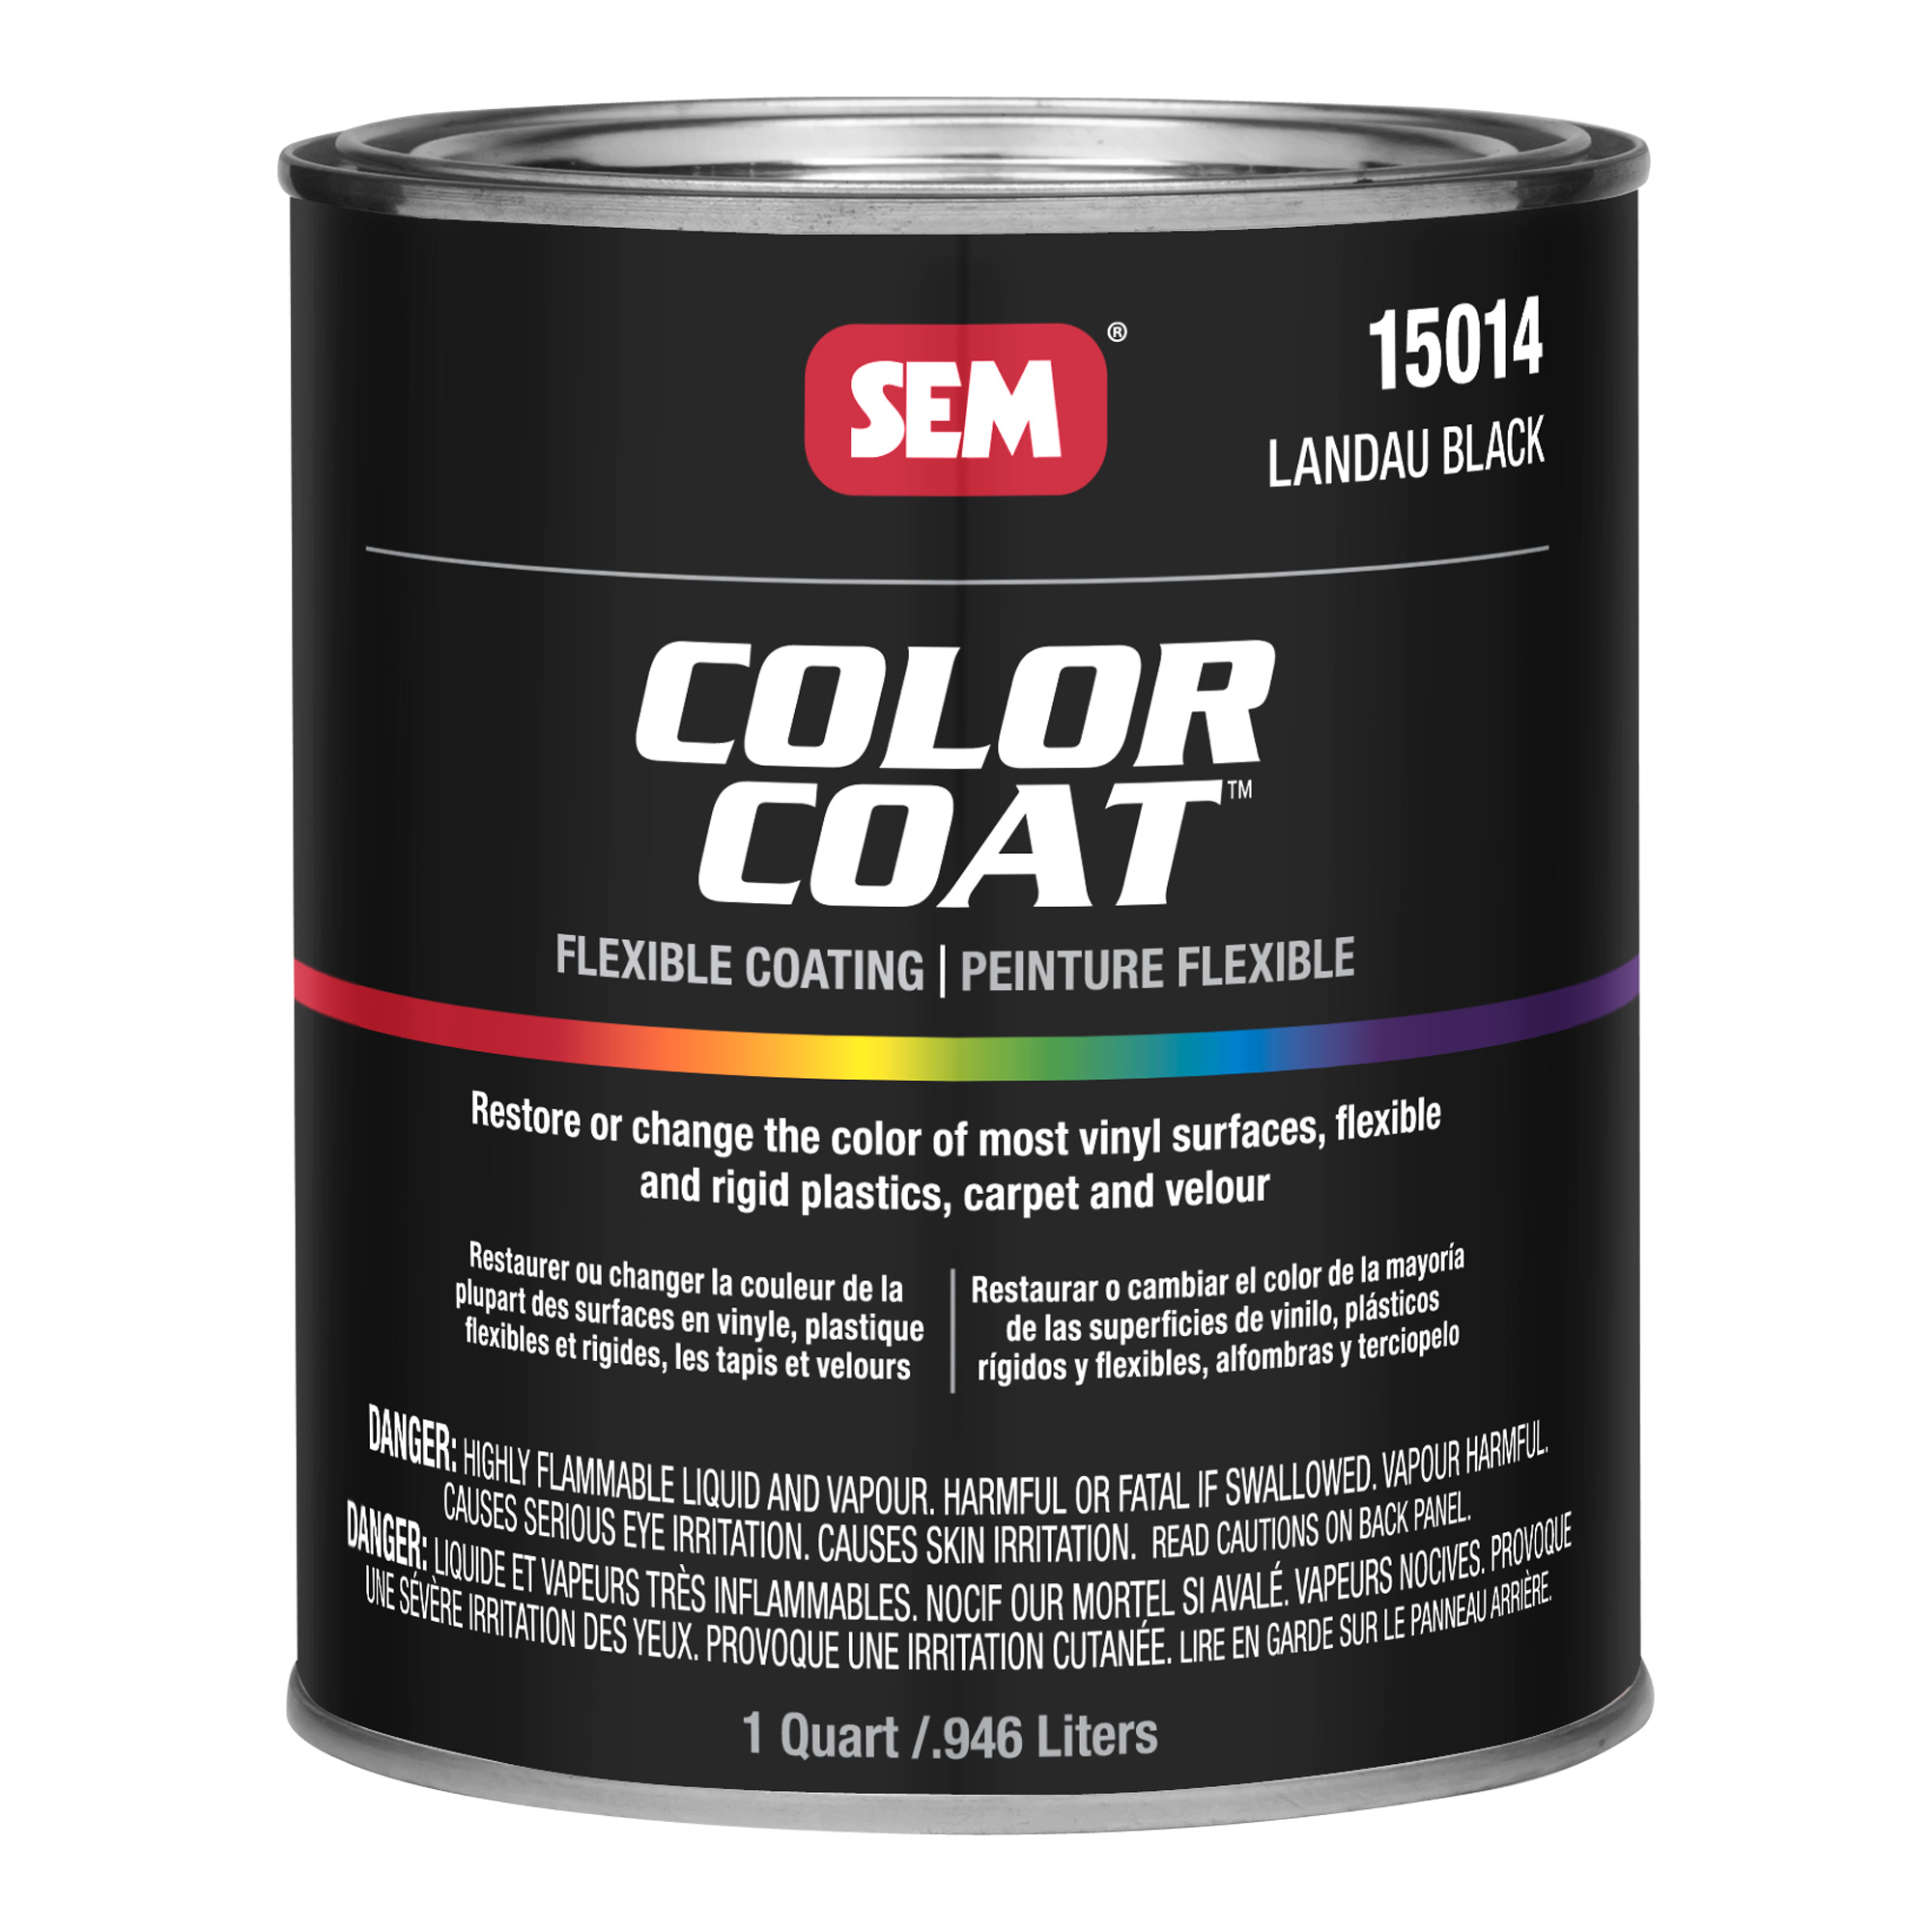 Color Coat Is A Specialty Elastomeric Coating Formulated To Re Or Change The Of Most Vinyl Surfaces Flexible And Rigid Plastics